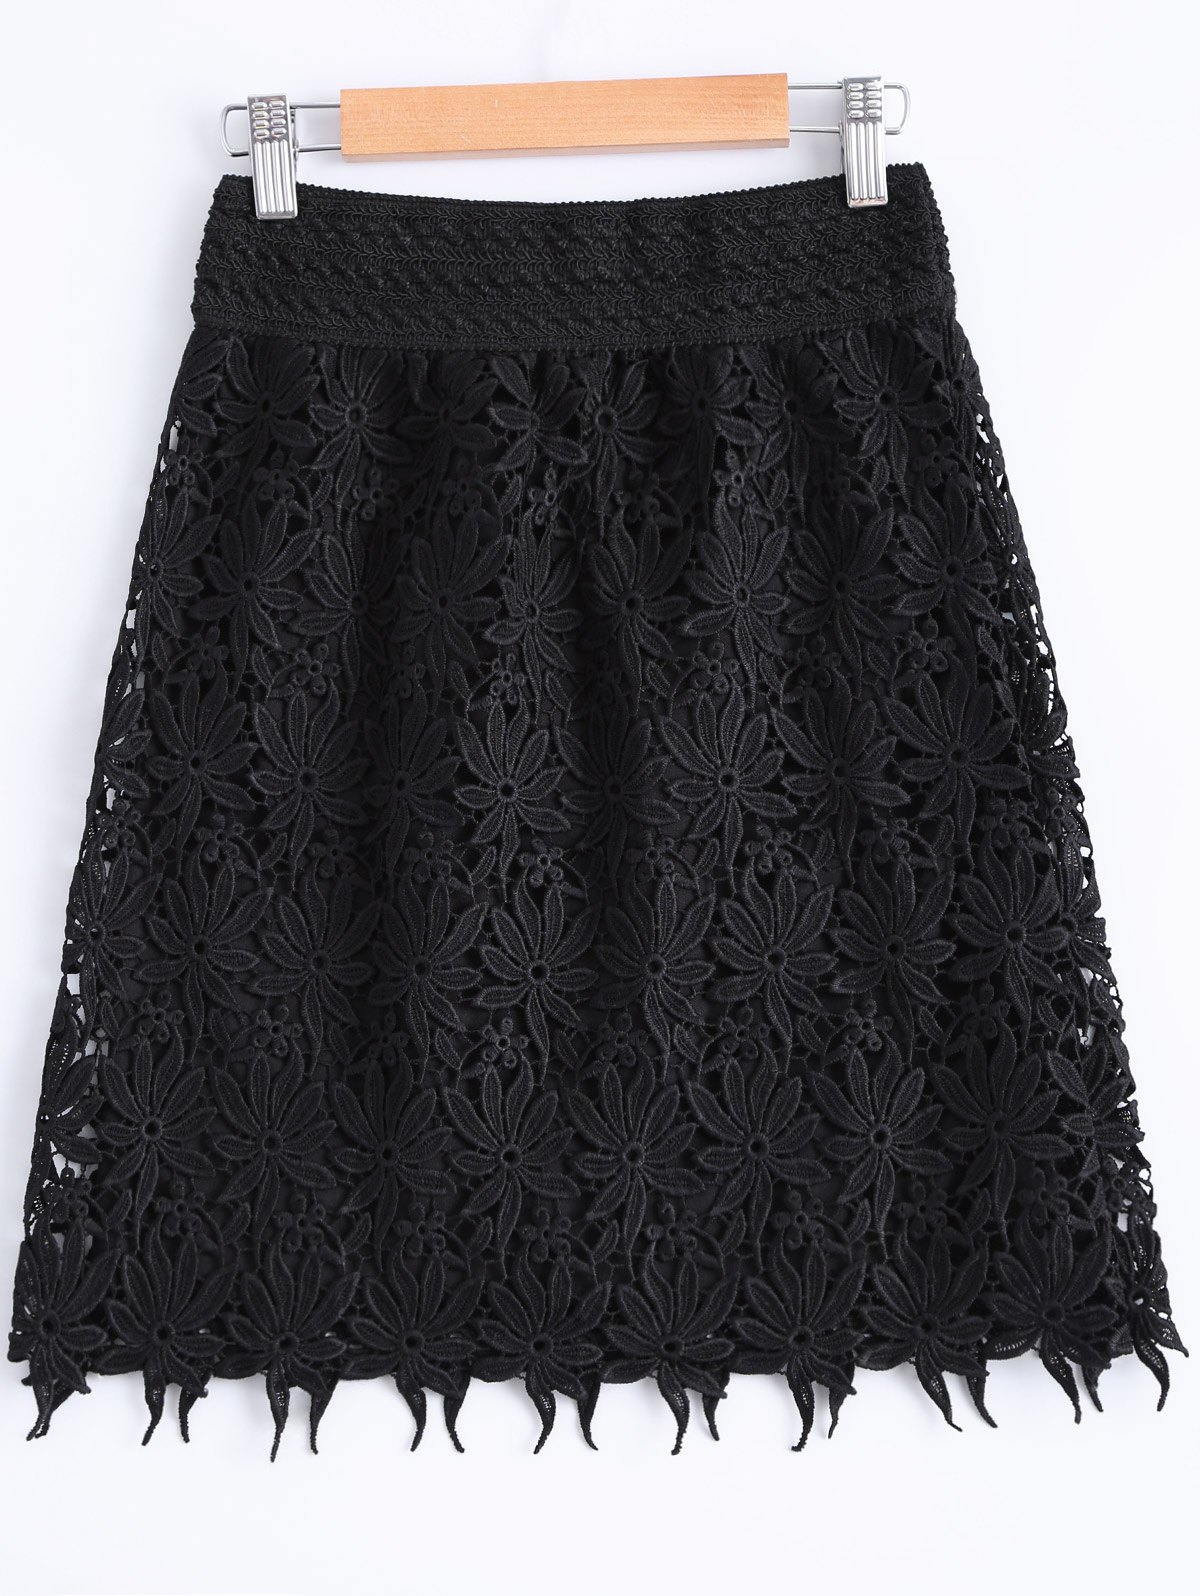 Fashionable Women's Elastic Waist Lace Overlay Bodycon Skirt